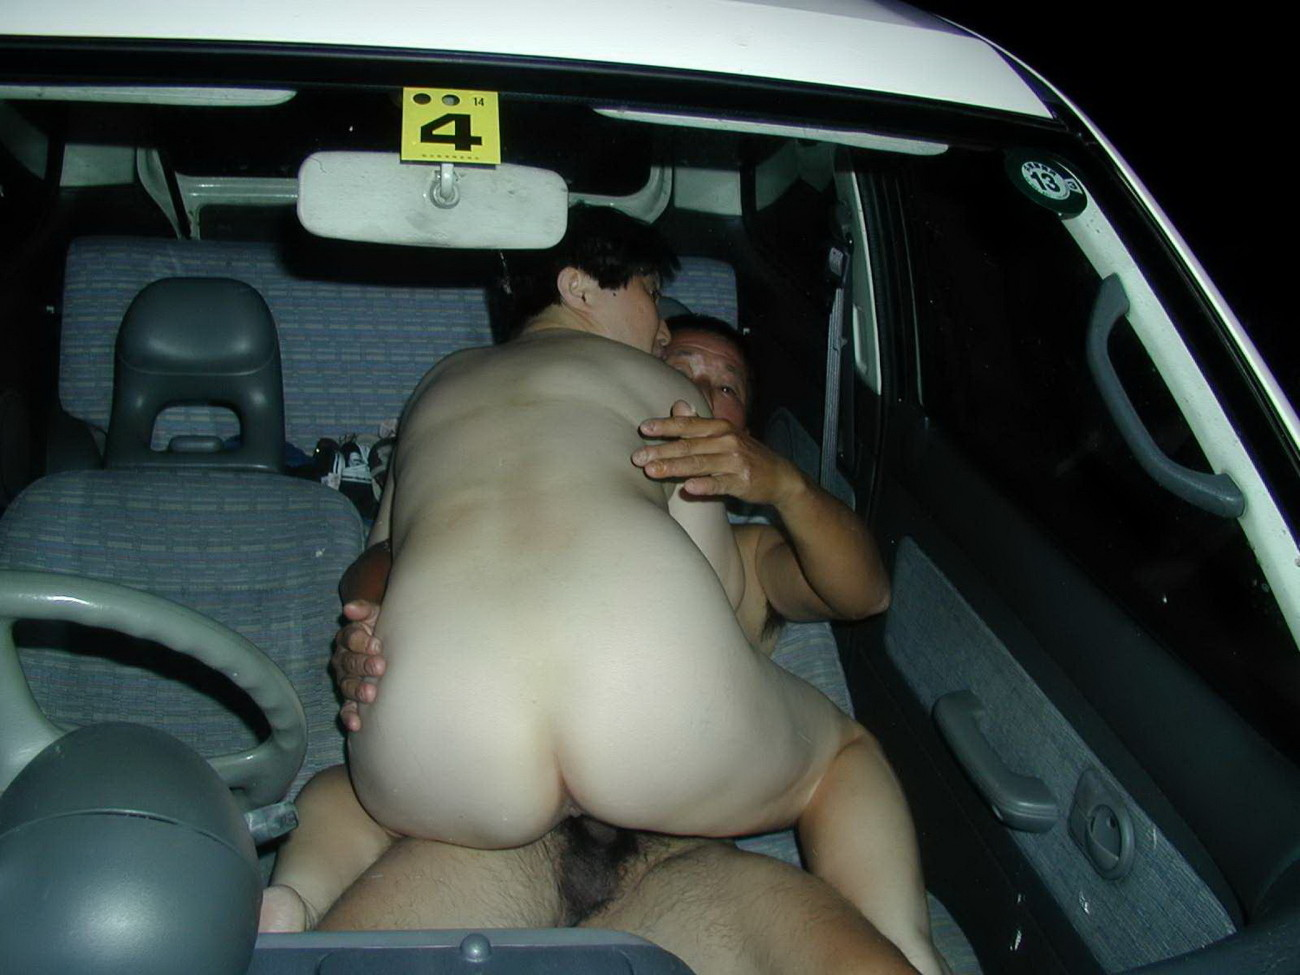 Nasty Lesbian Sex In The Car